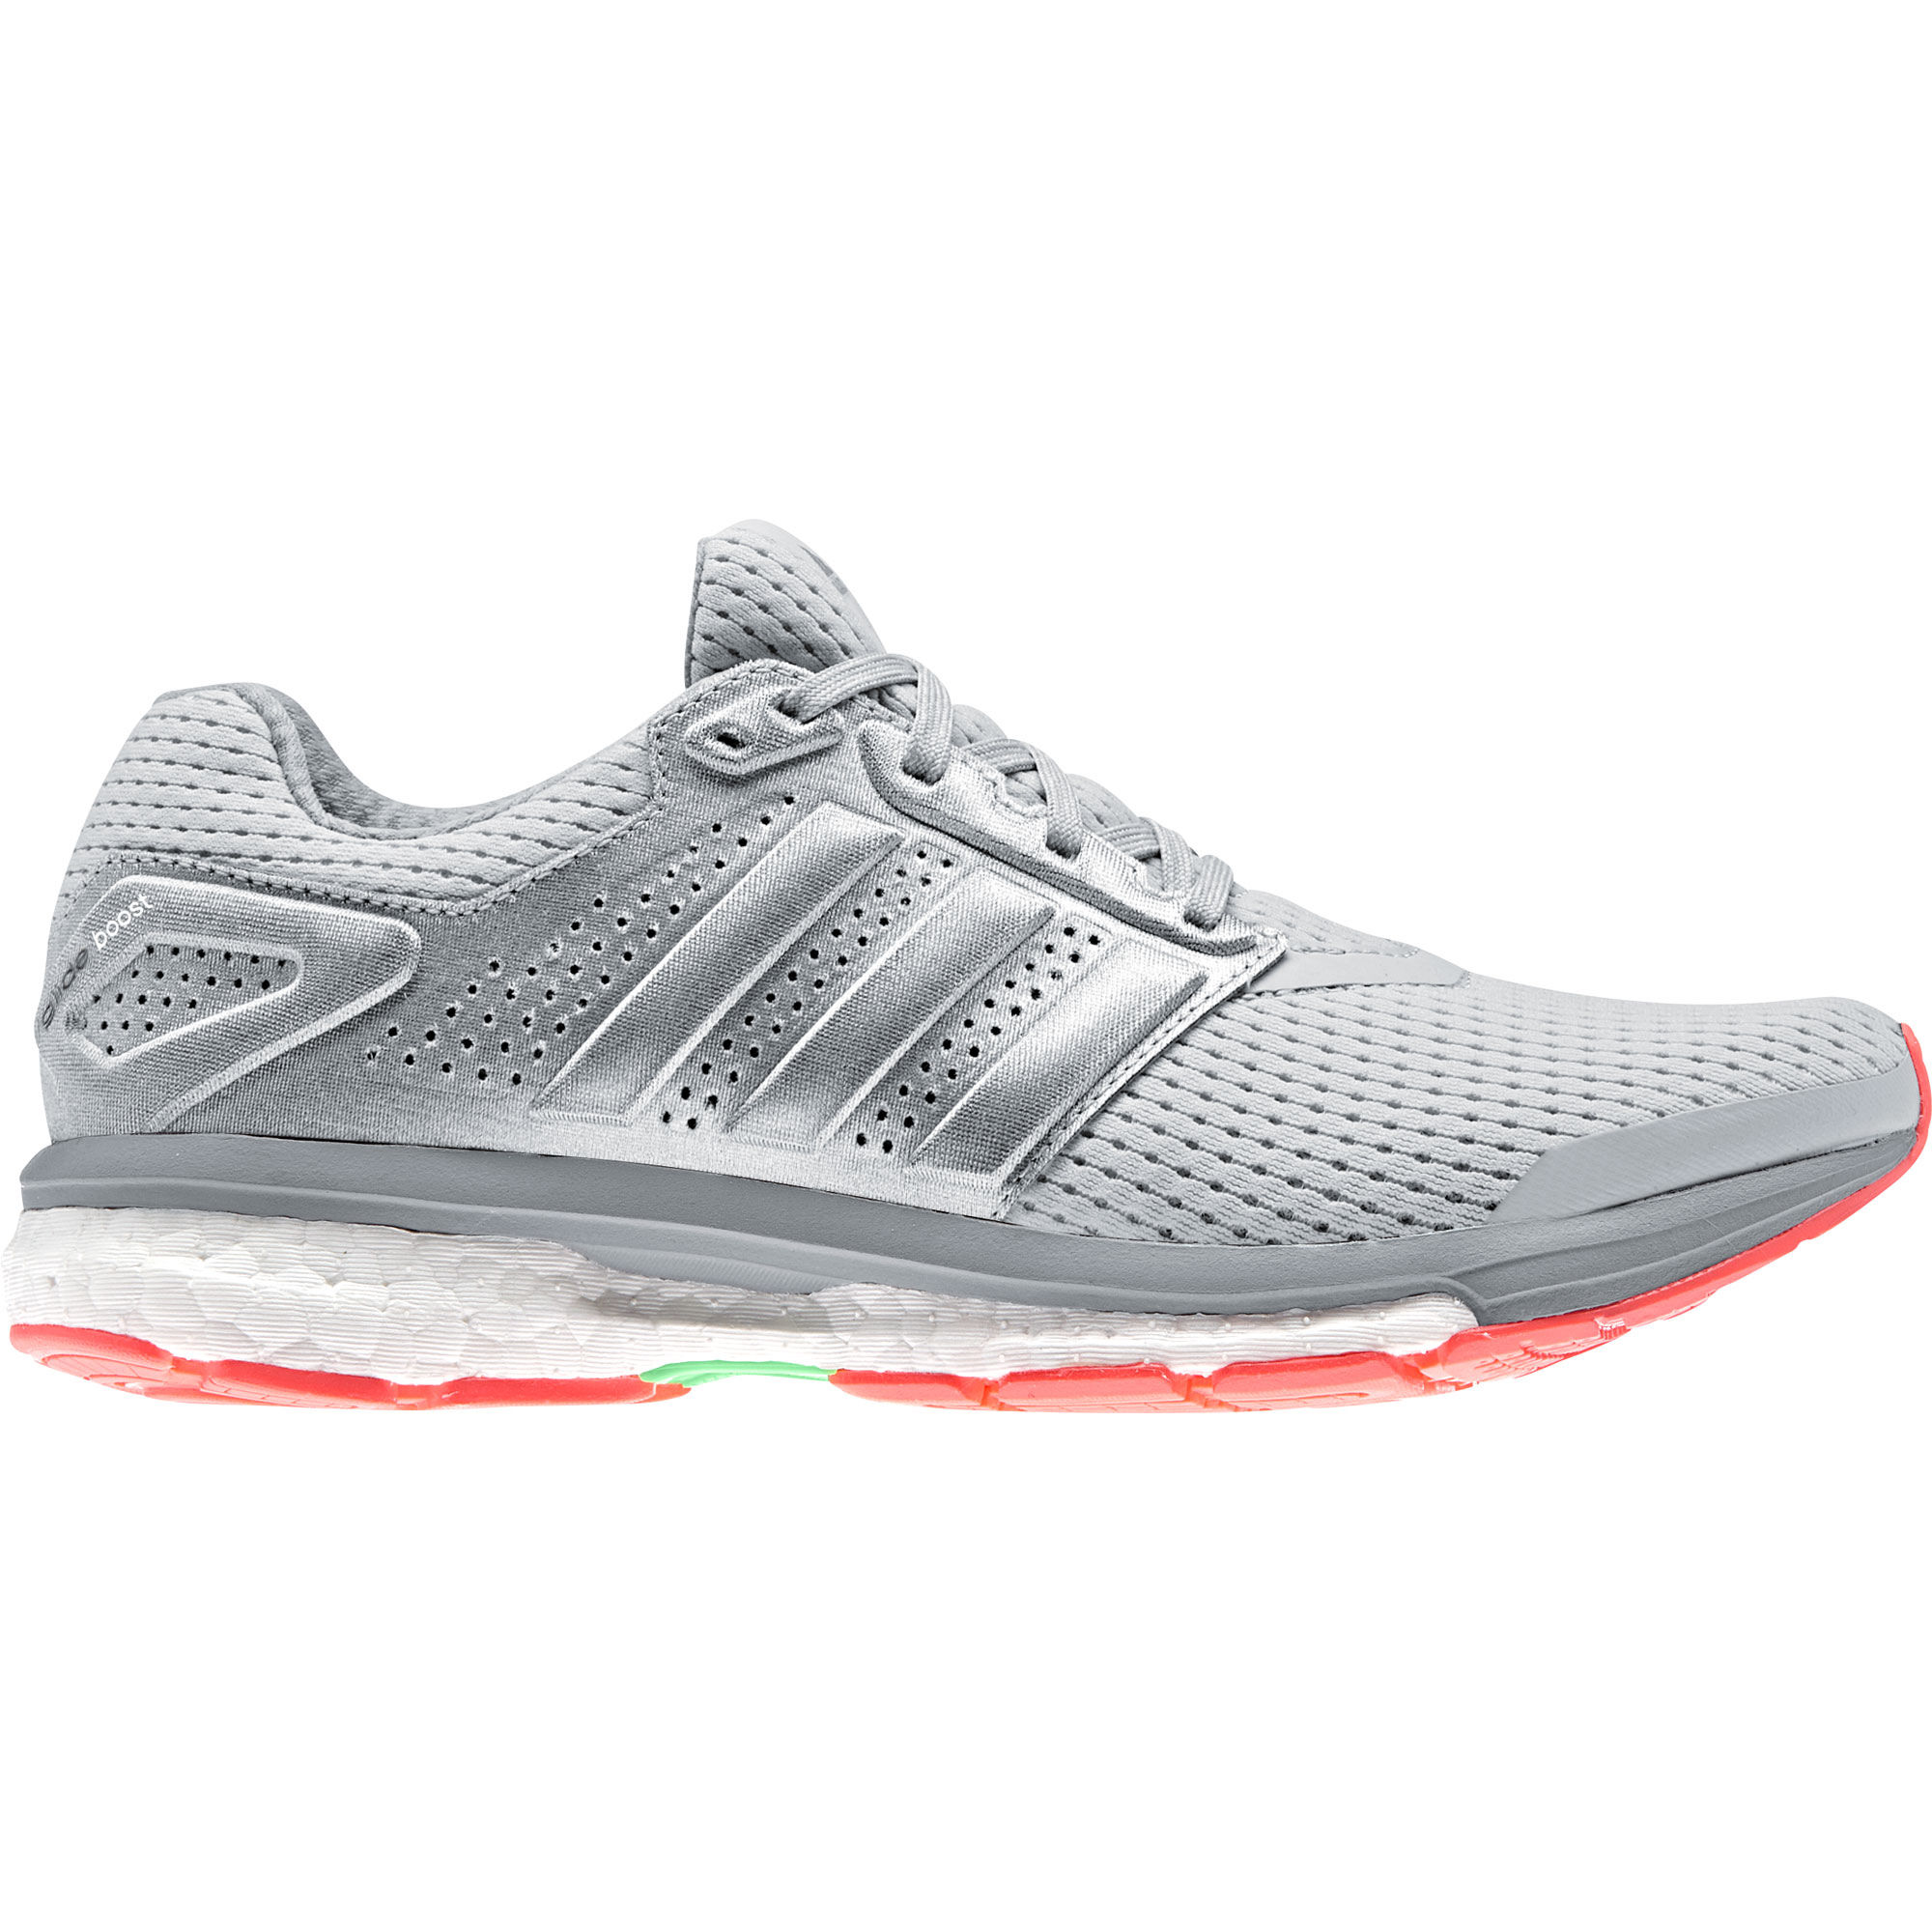 4bb162f31fb28b adidas supernova boost glide 7 running shoes